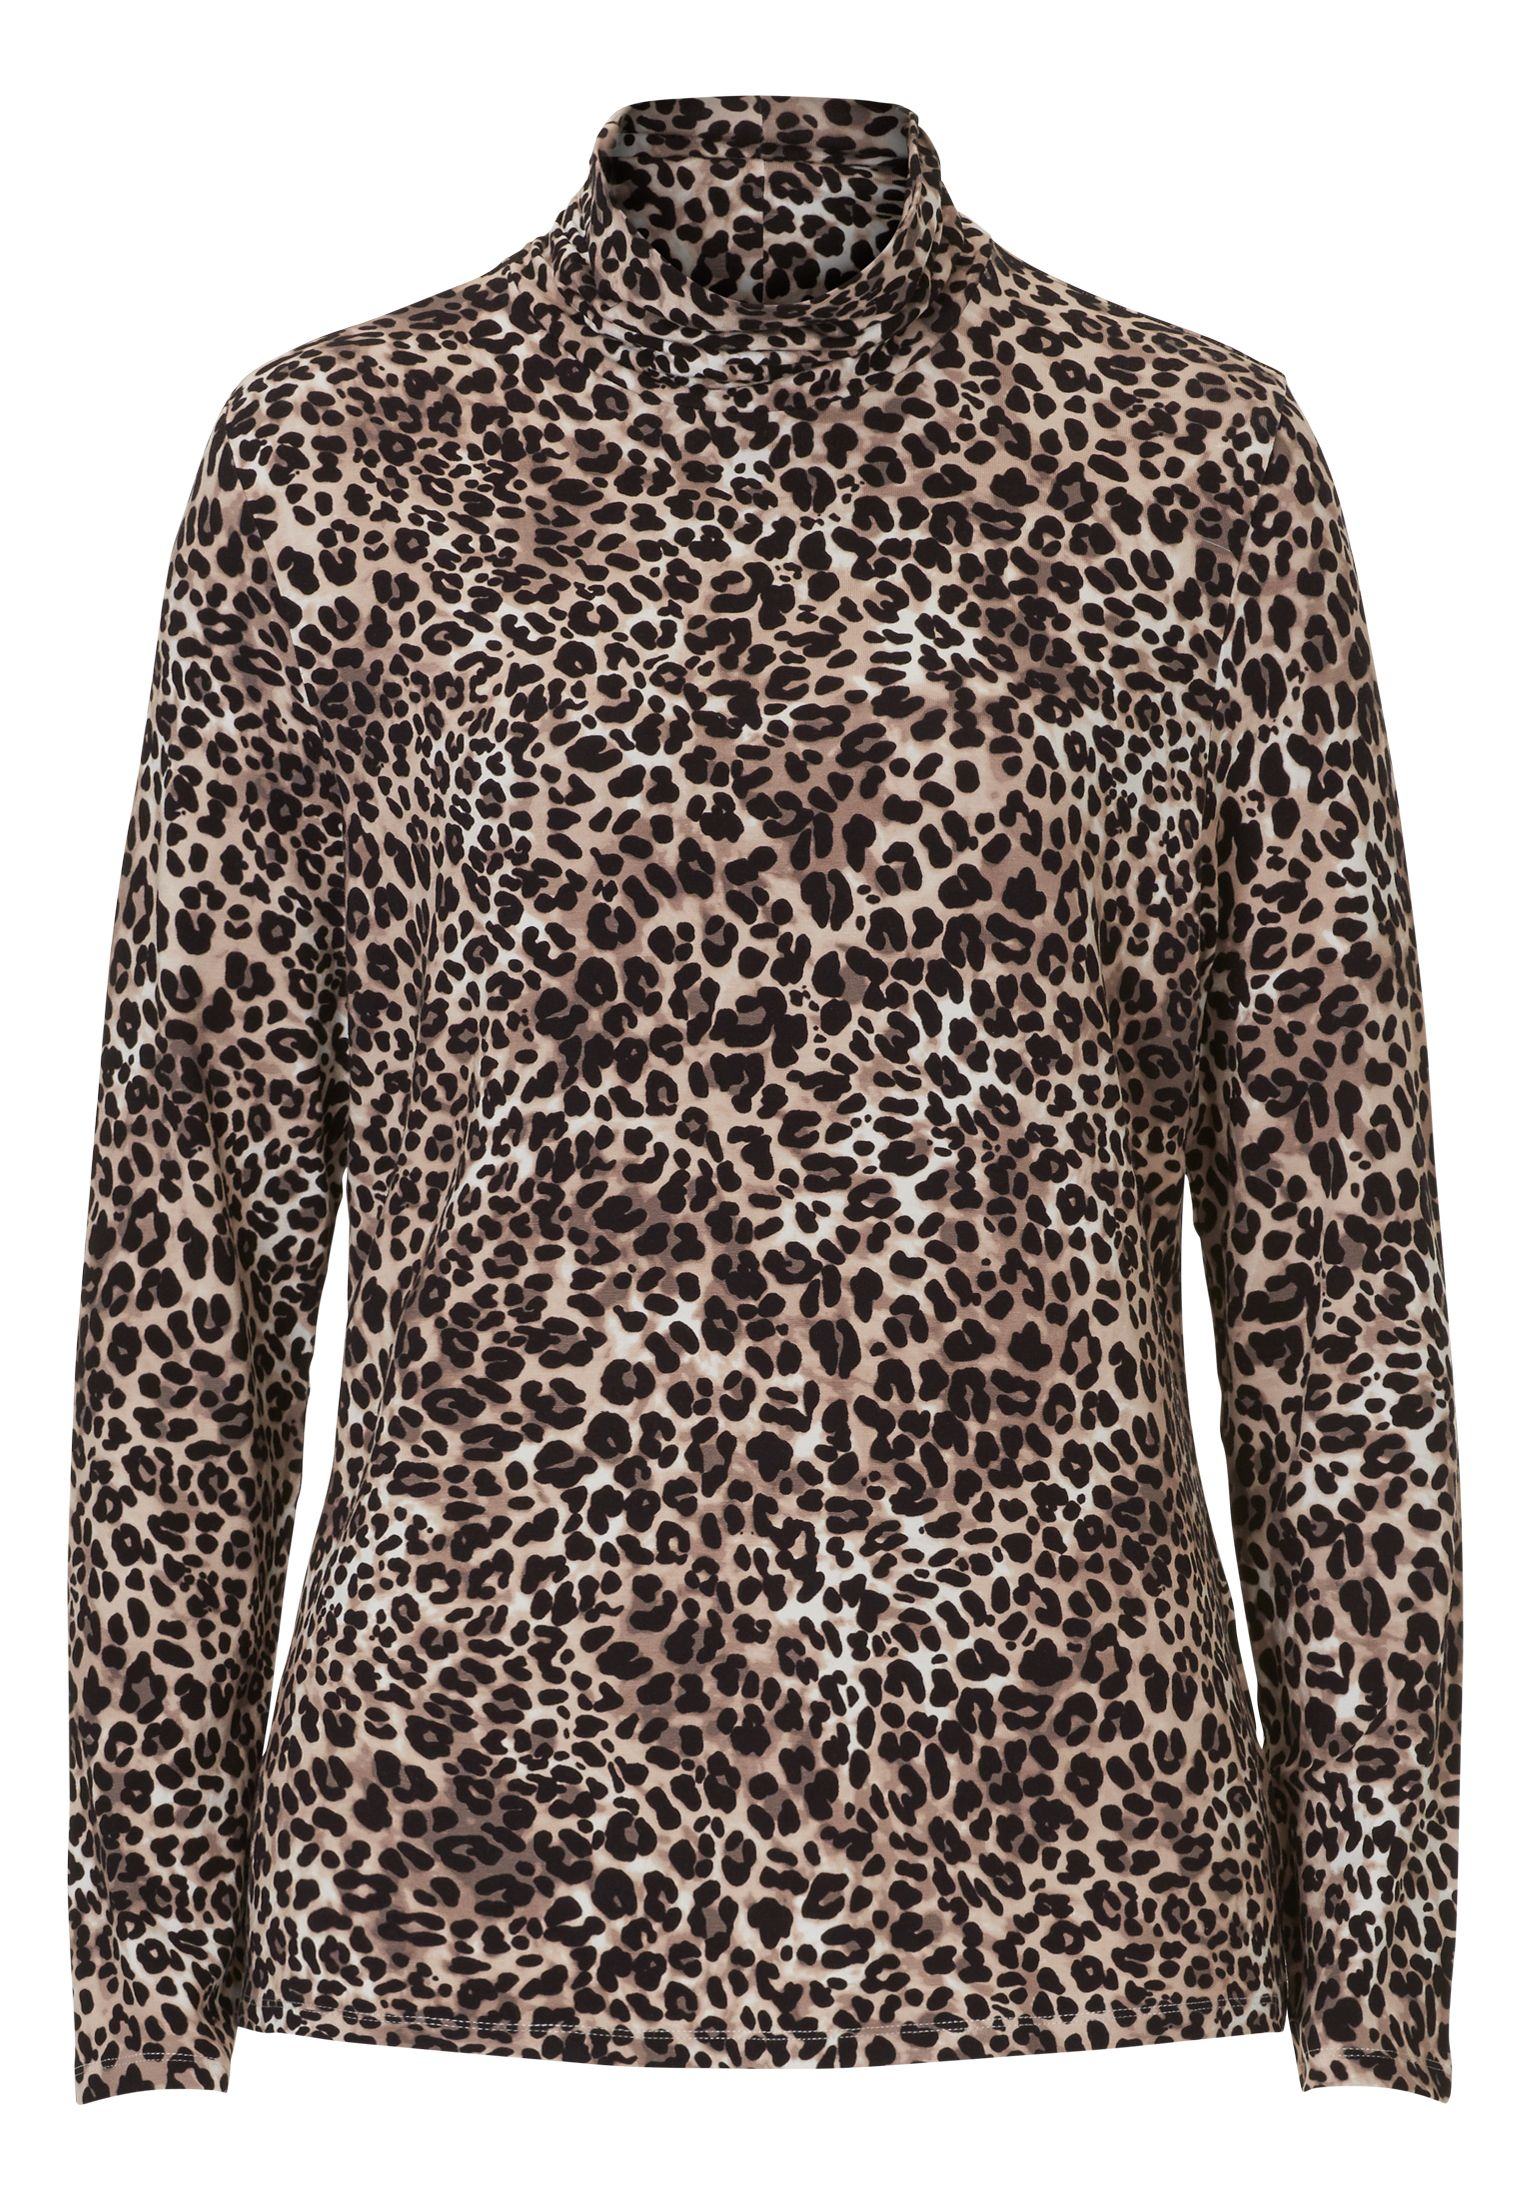 Betty Barclay Animal Print Top, Multi-Coloured